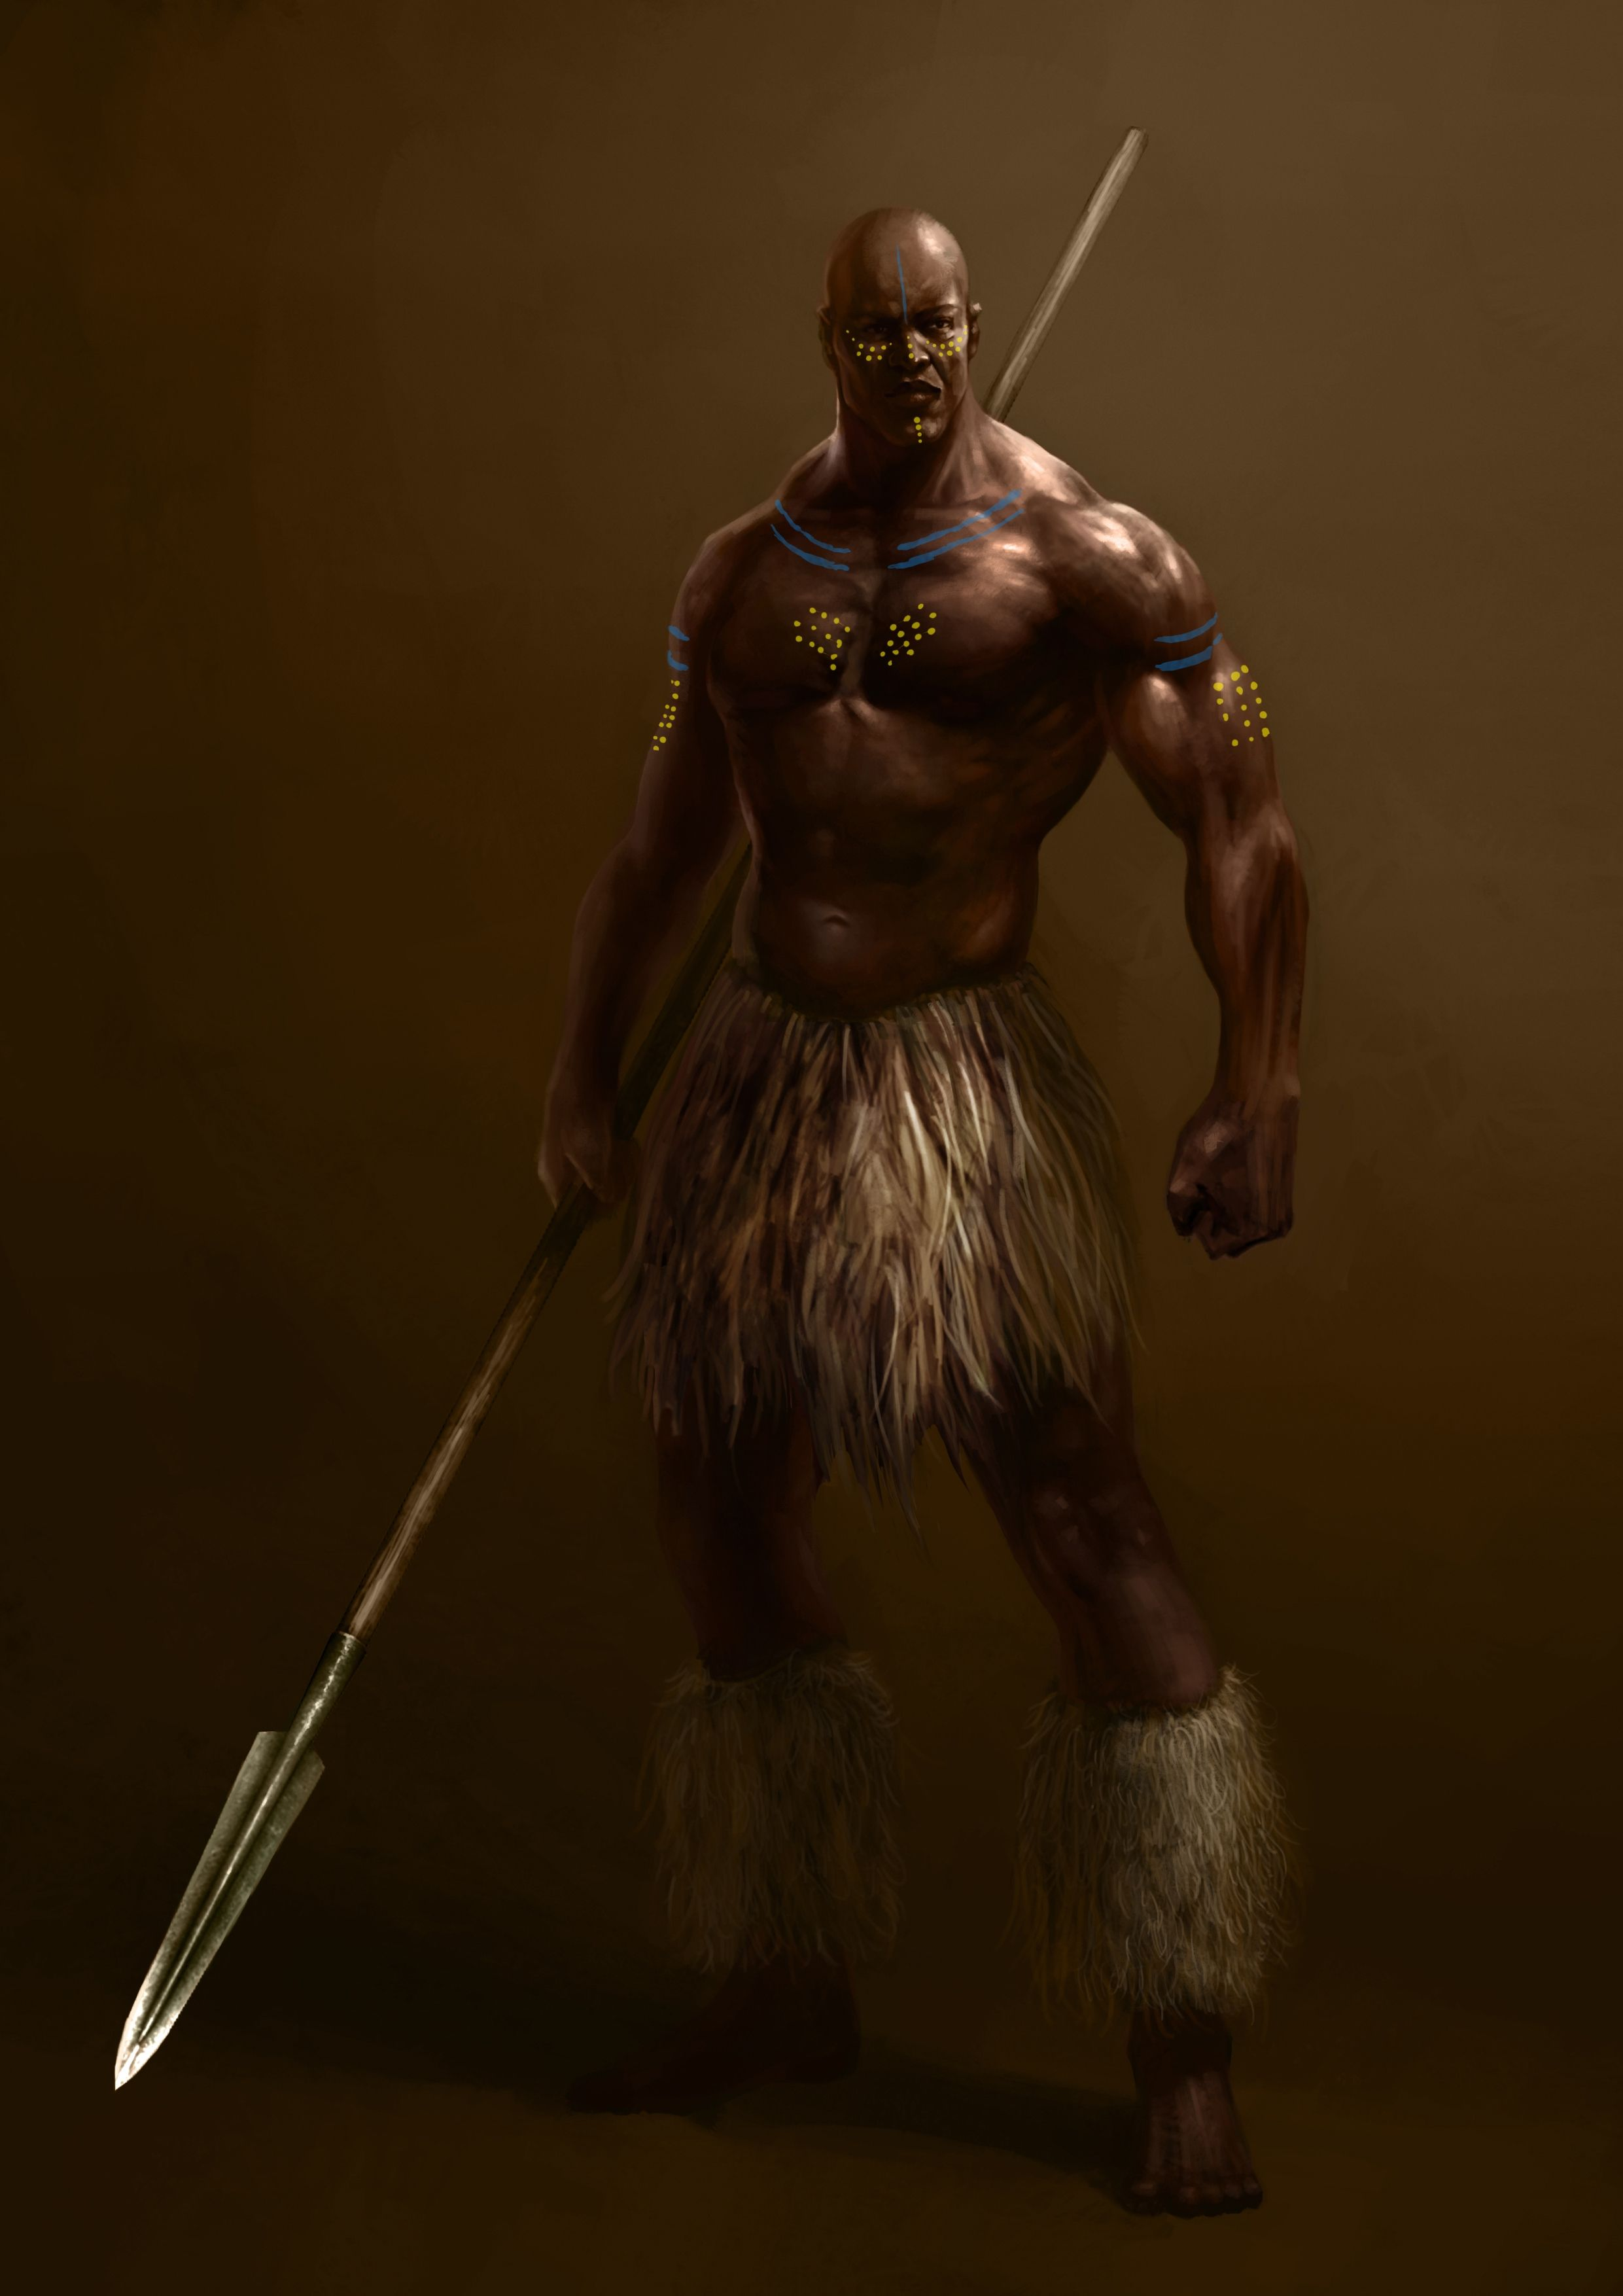 Fighting the urge to get this recreated on my body #zulu# ...